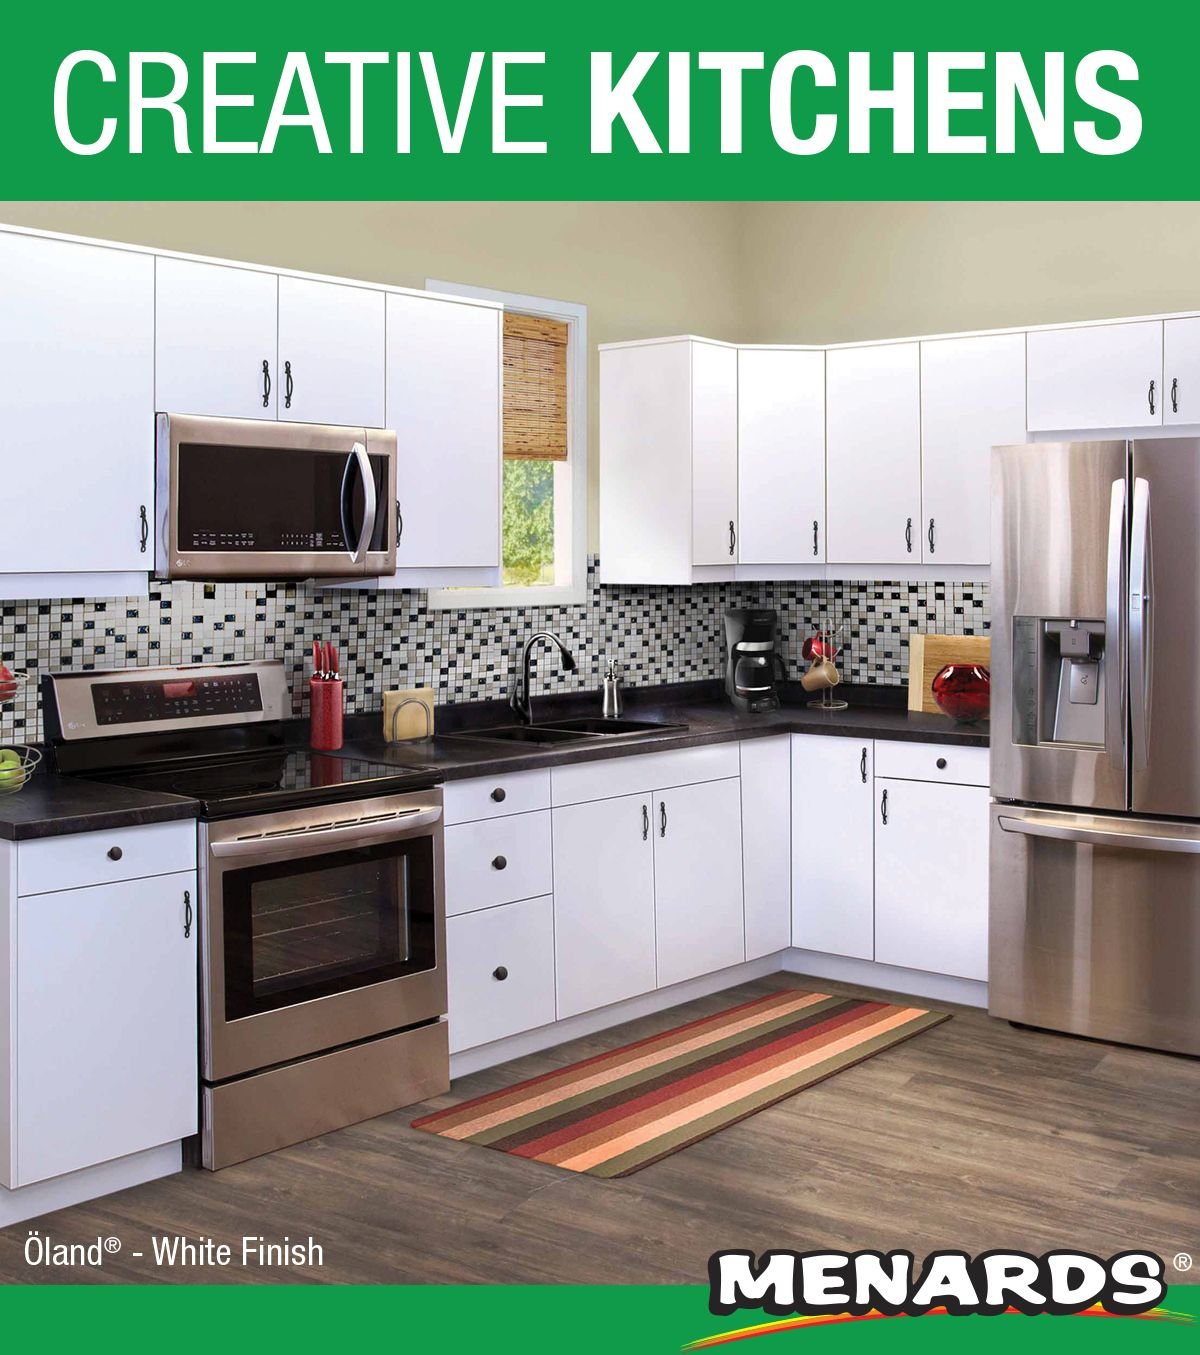 Klearvue Cabinetry Is A Menards Exclusive Cabinetry Program That Gives You The Look And Feel Of Custom Menards Kitchen Complete Kitchens Kitchen Decor Pictures